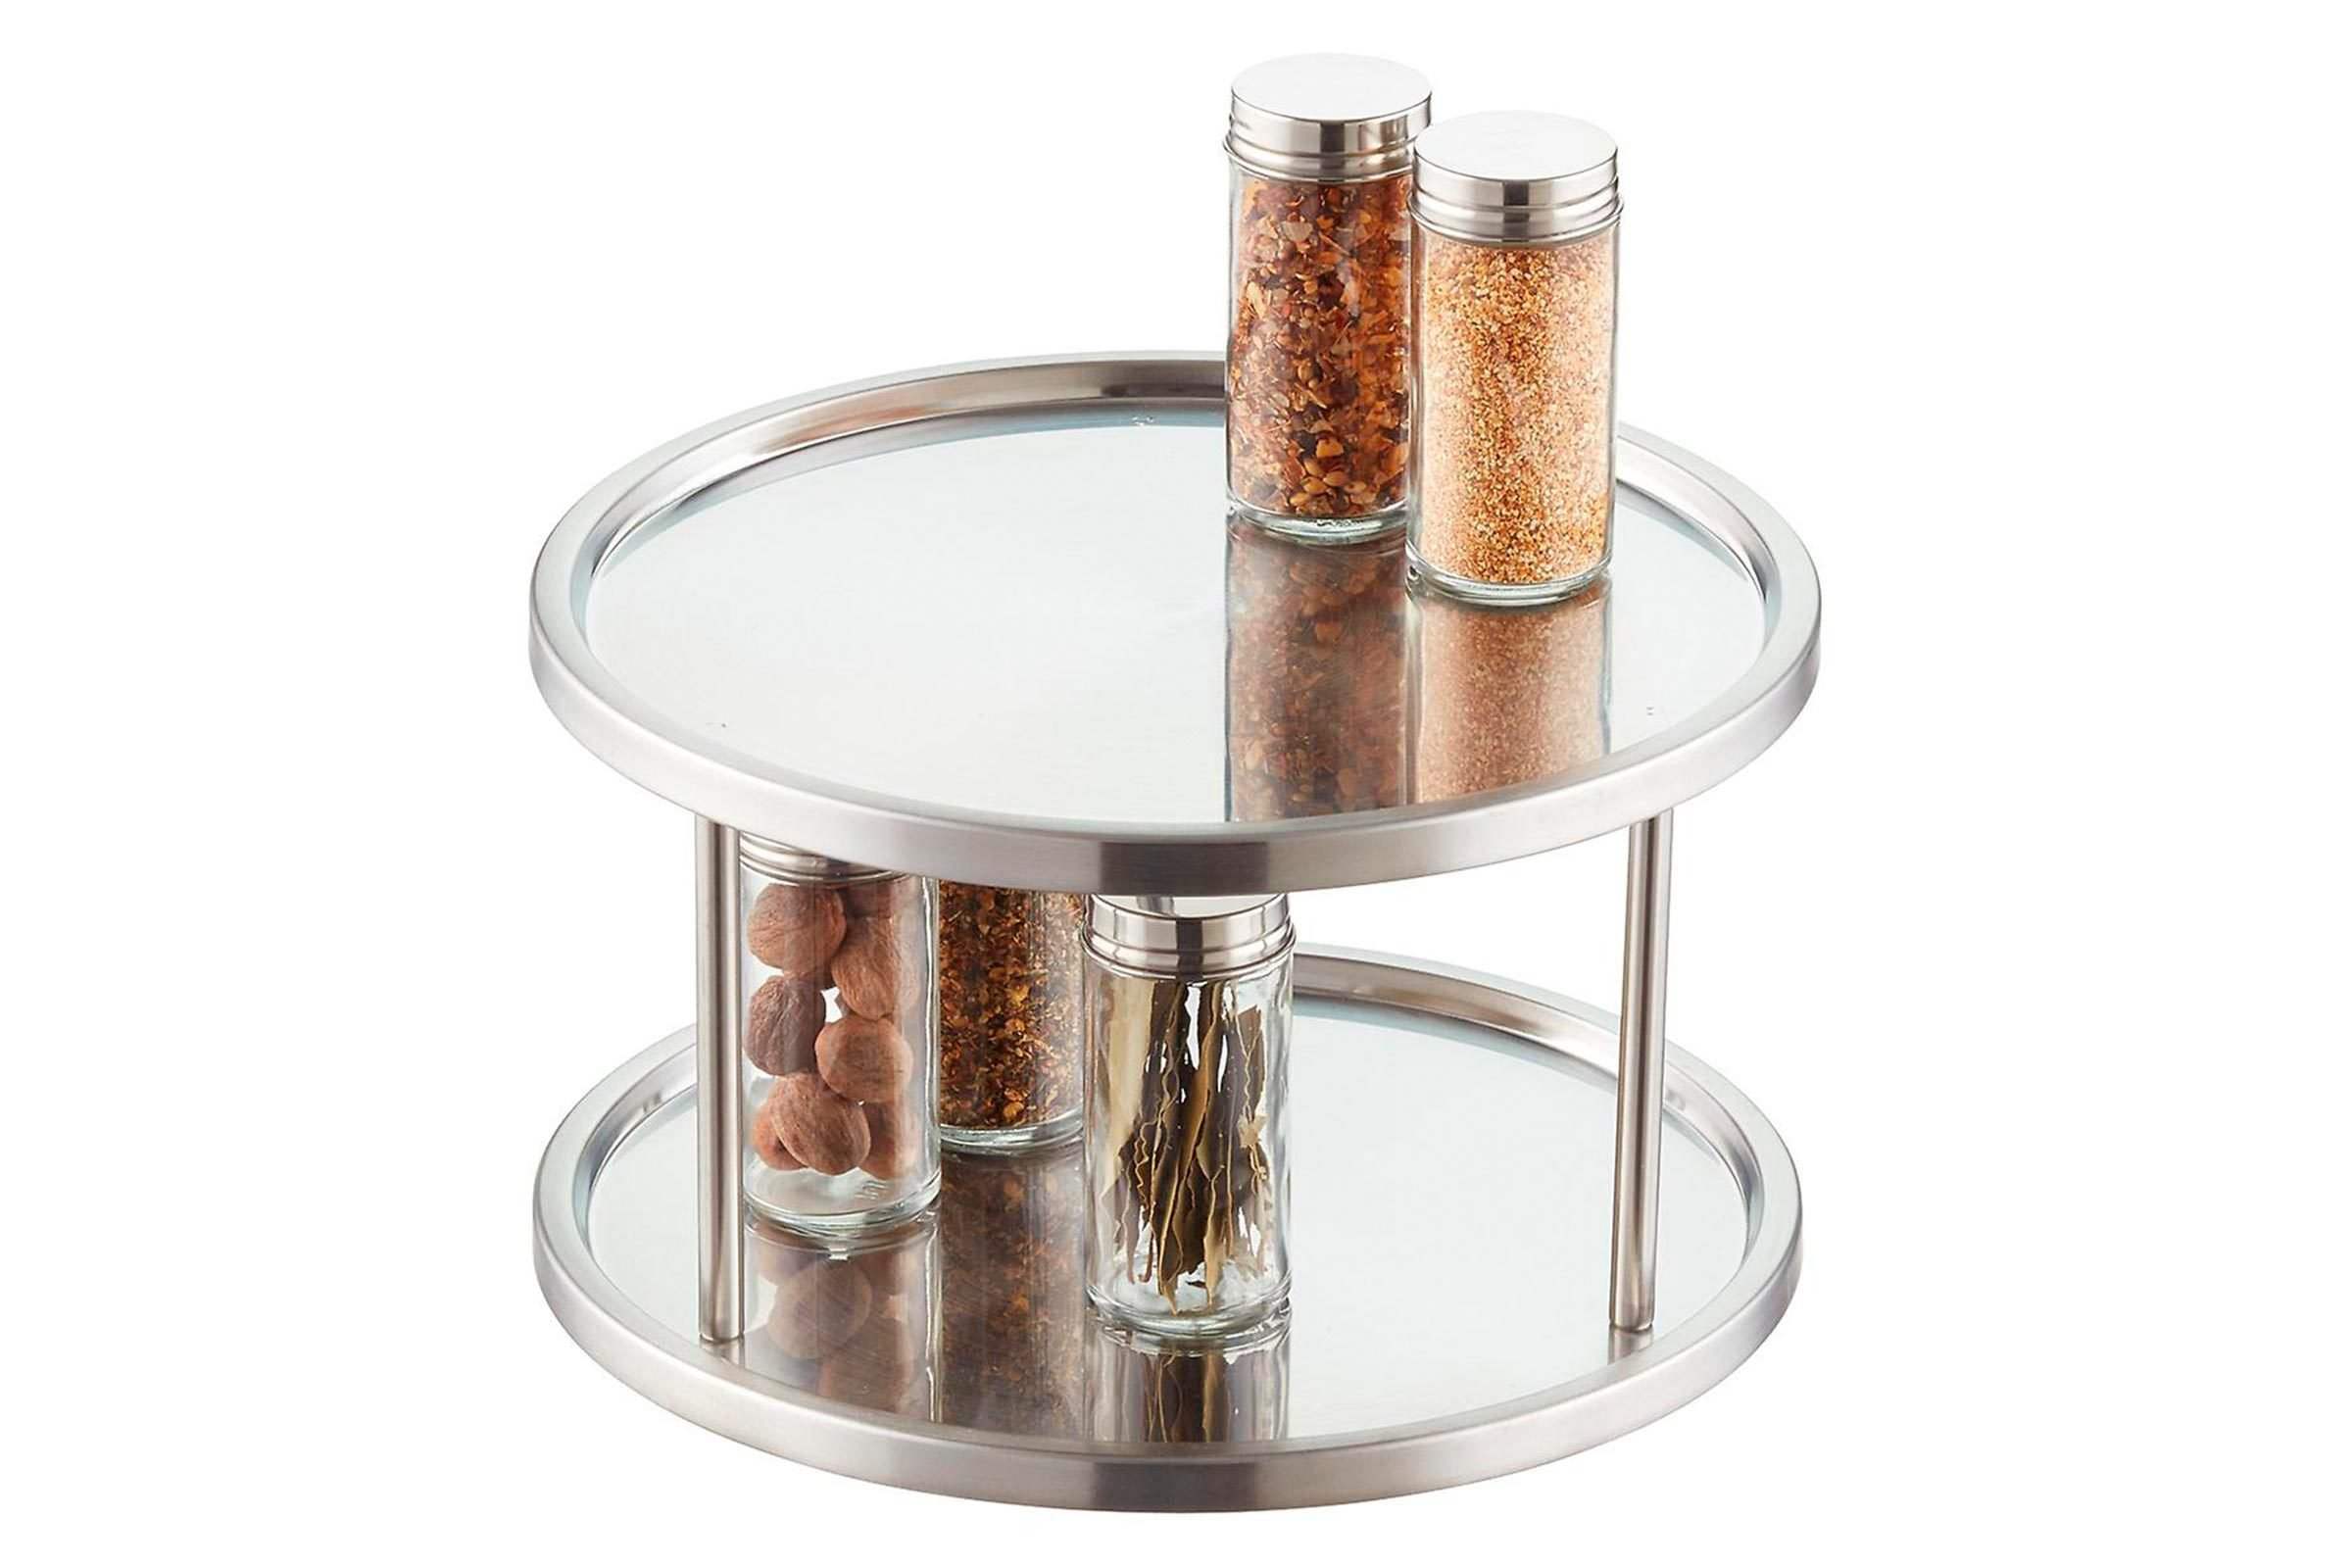 Stainless Steel Lazy Susan